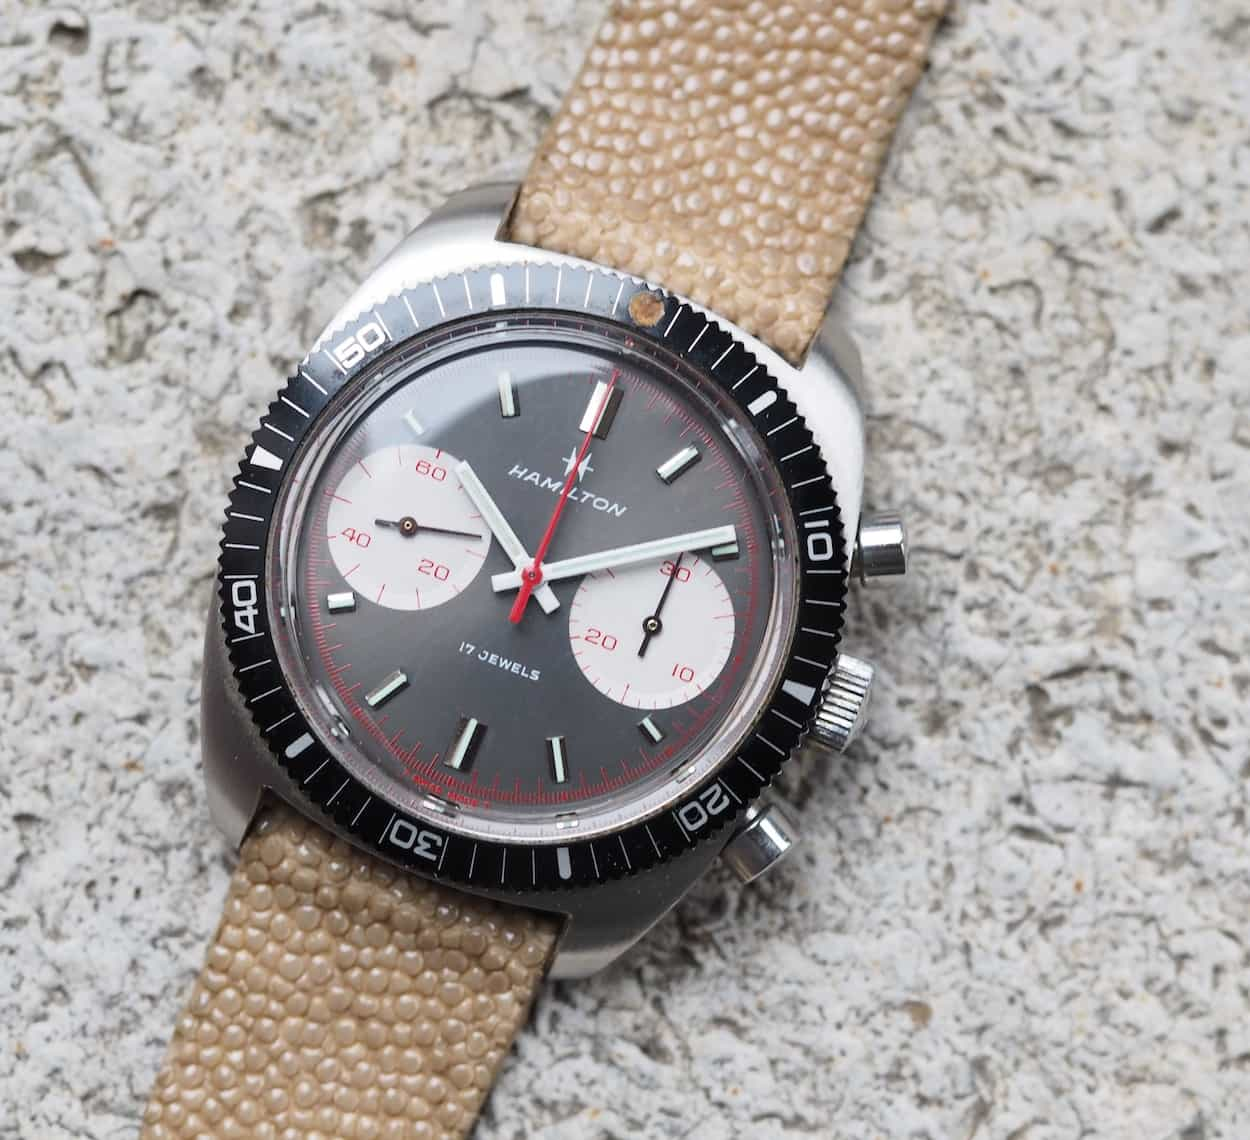 Hamilton Chrono-Diver looks nice on stingray